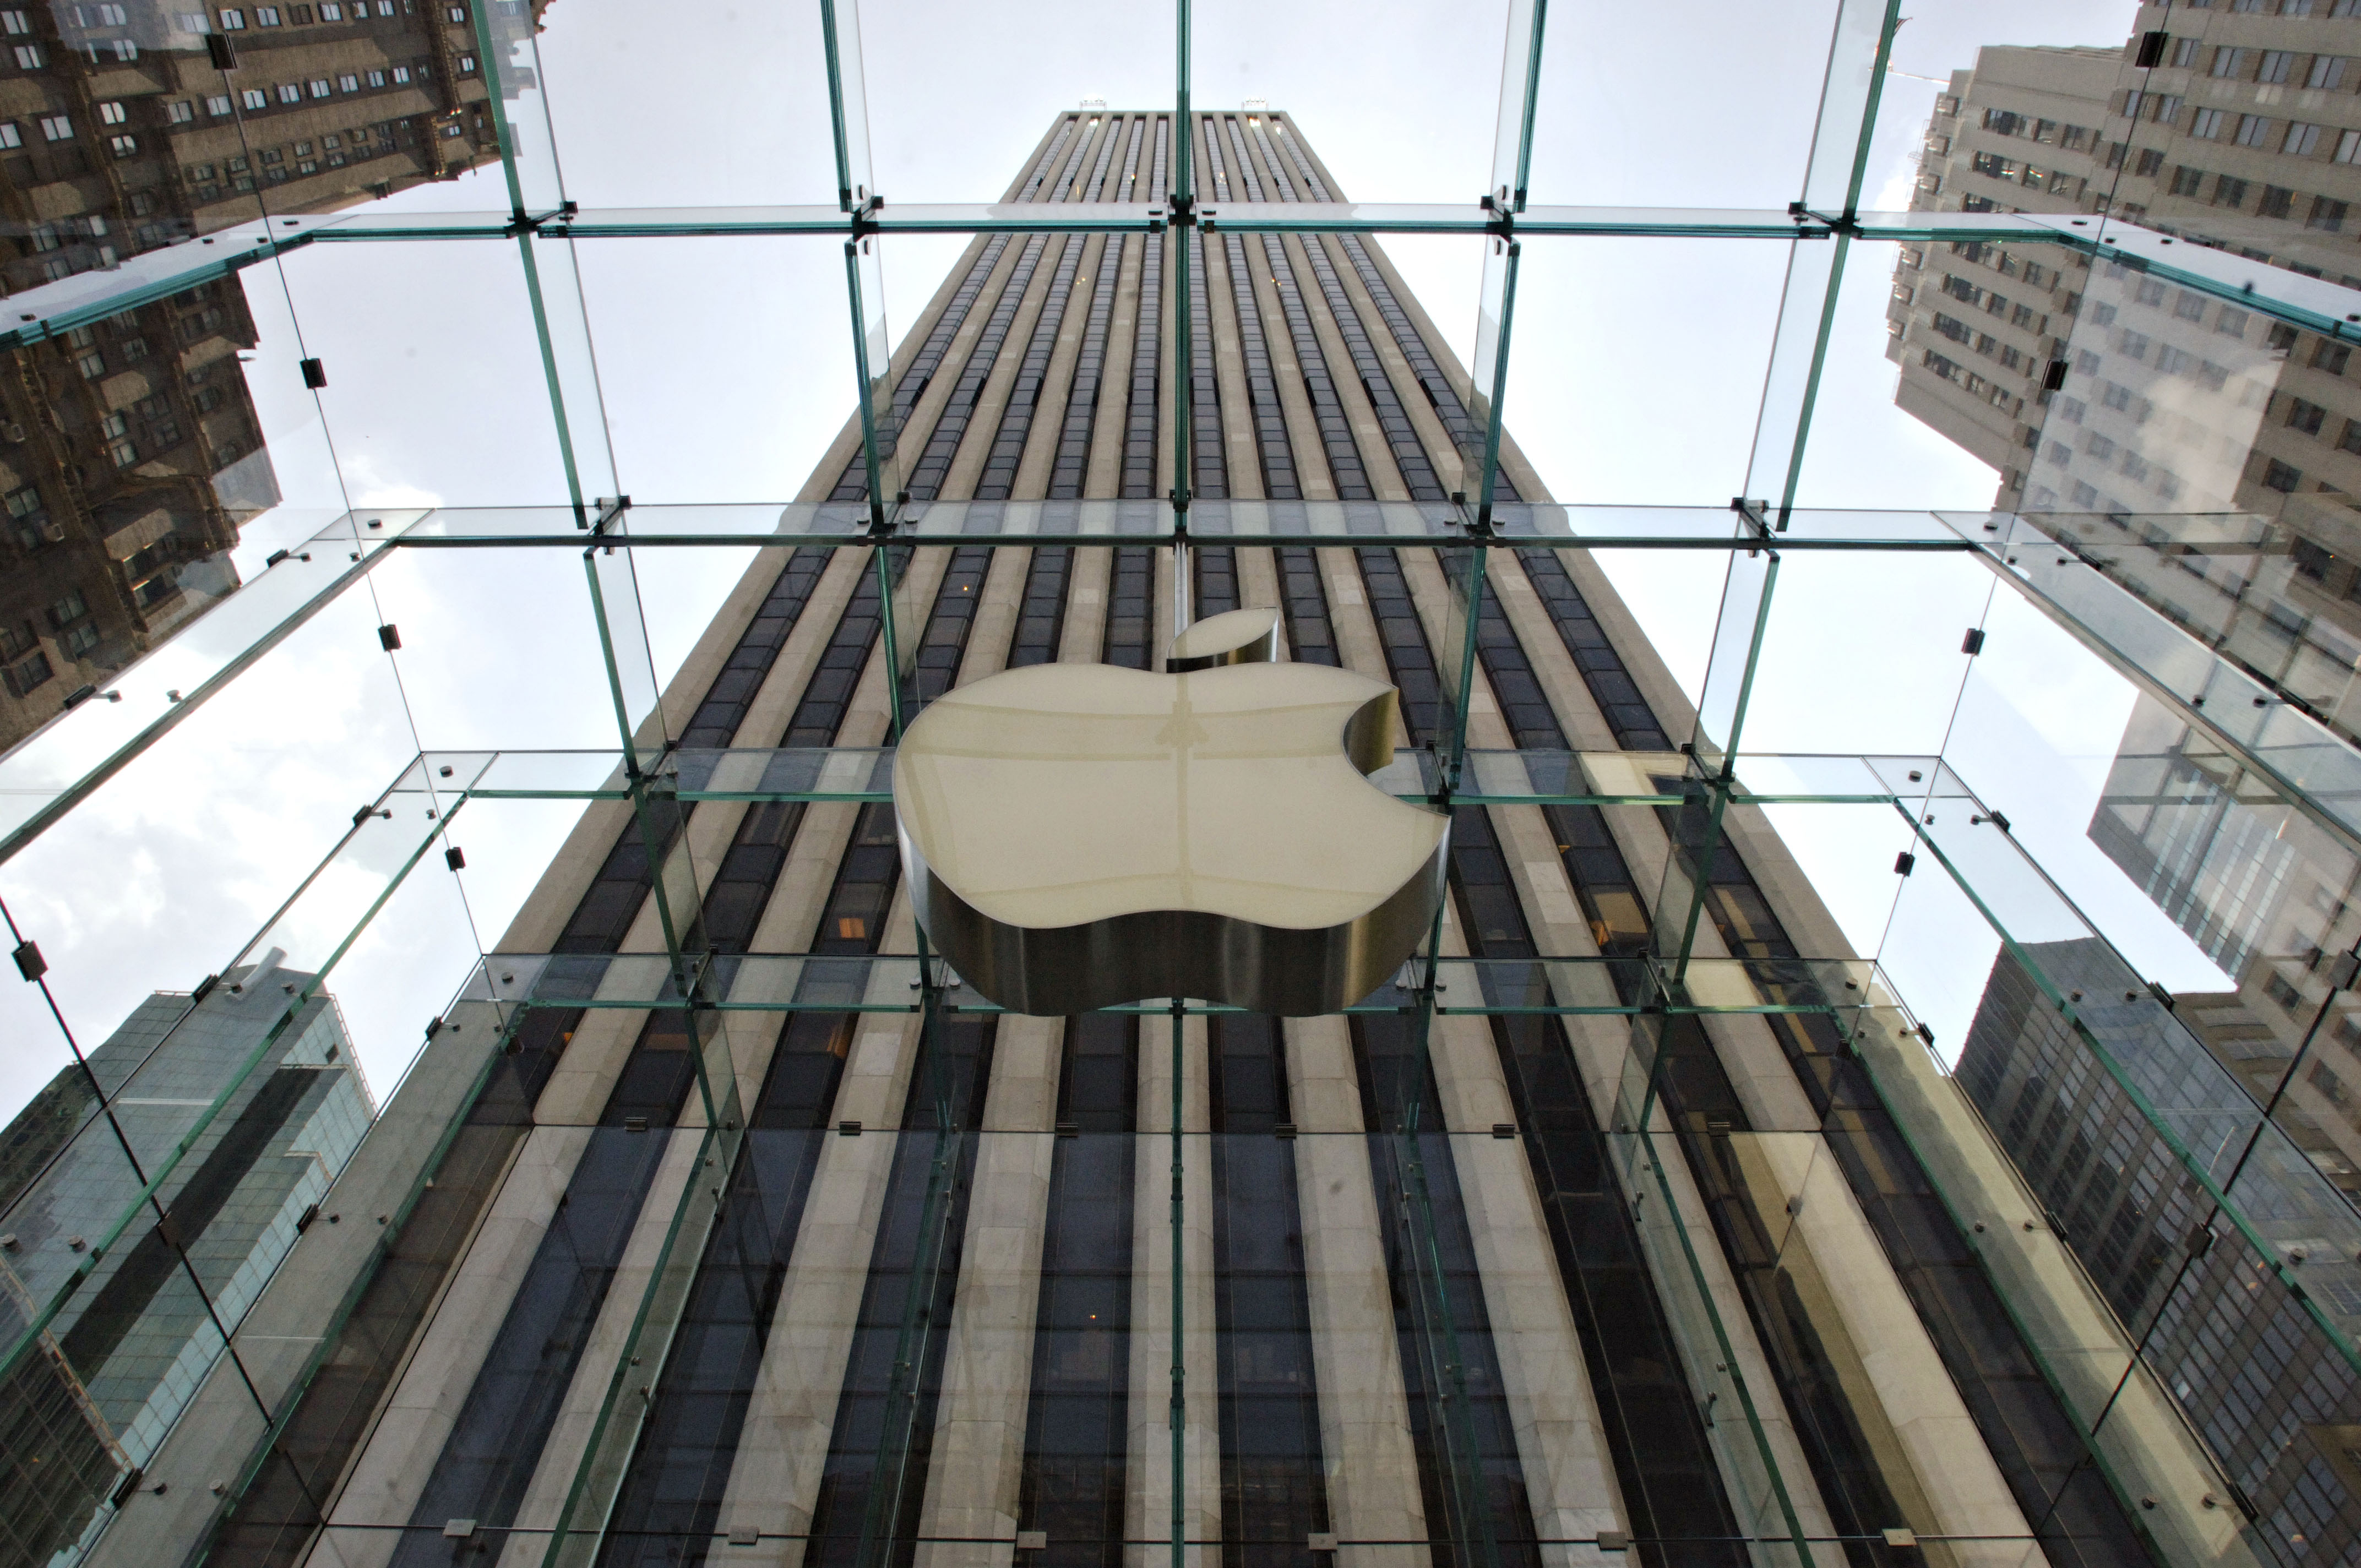 An Apple Computer Inc. logo hangs in the center of a clear glass cube marking the entrance to the new Apple Store in New York, Thursday, May 18, 2006.